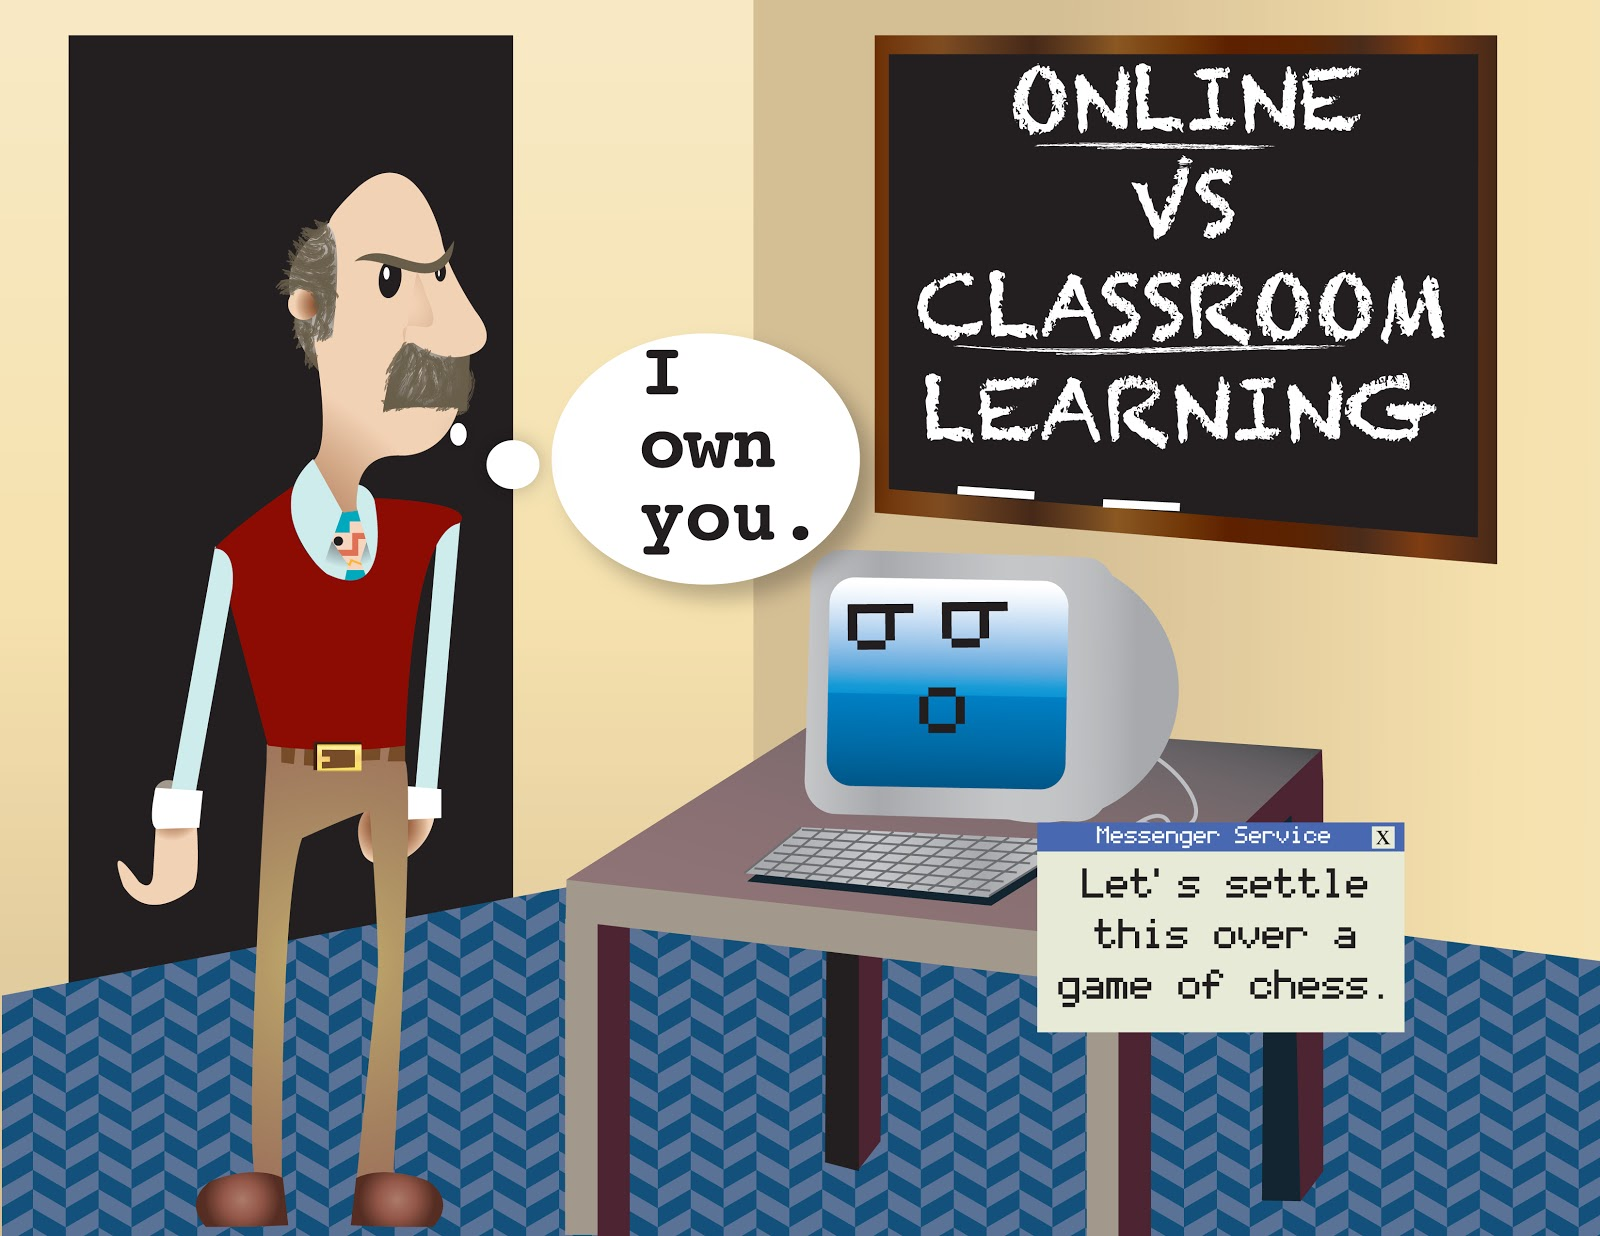 Online vs. Traditional Education—Which is Best?